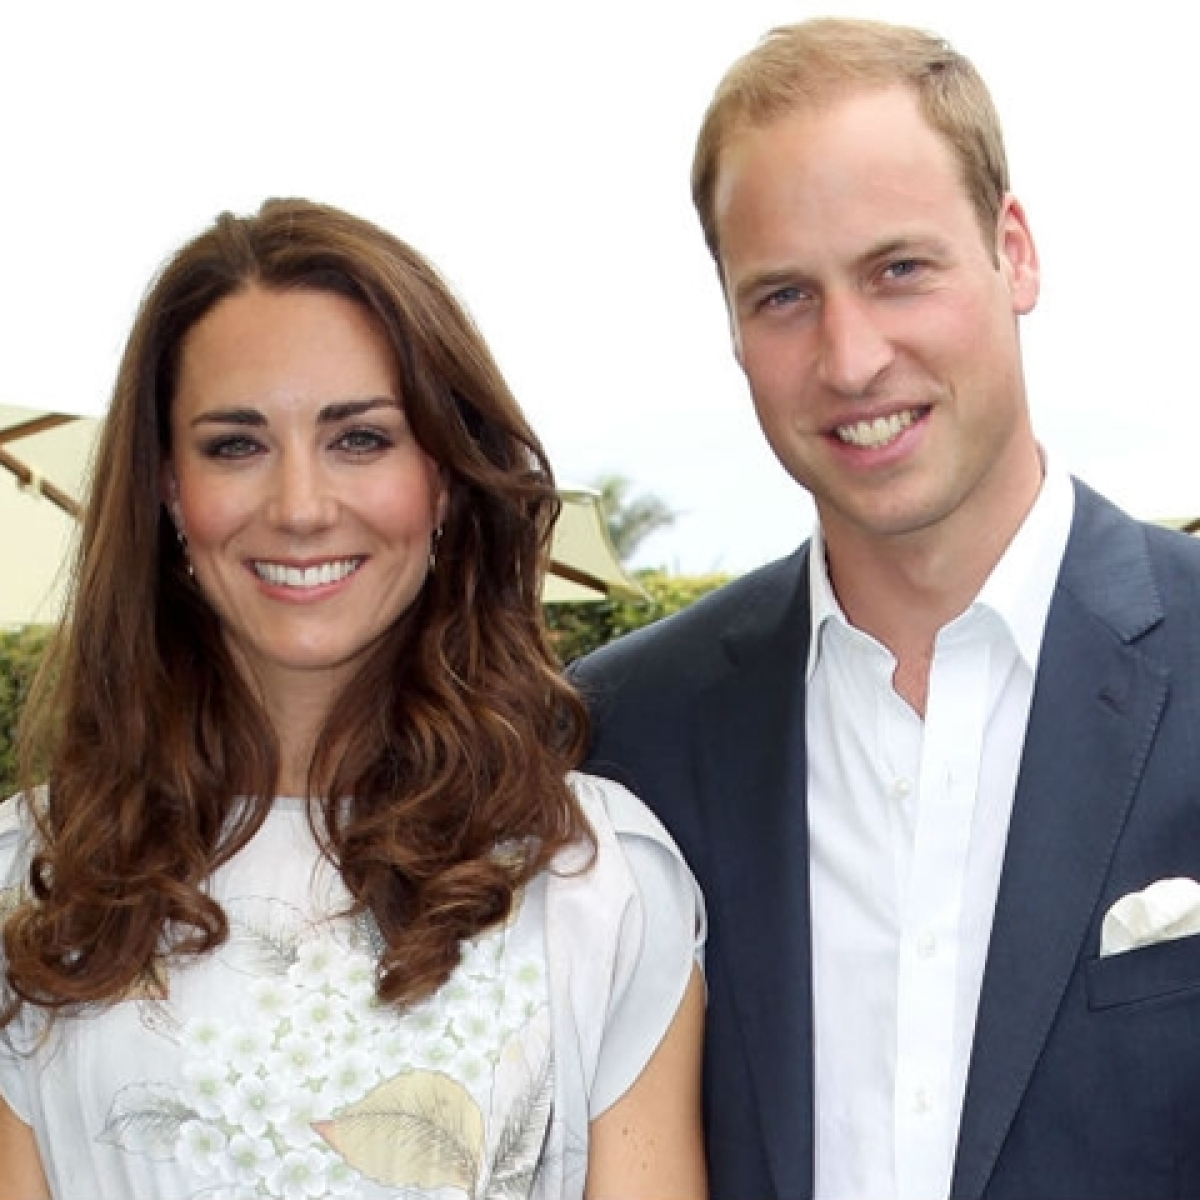 Prince William, Kate Middleton to arrive in Pakistan today on historic visit